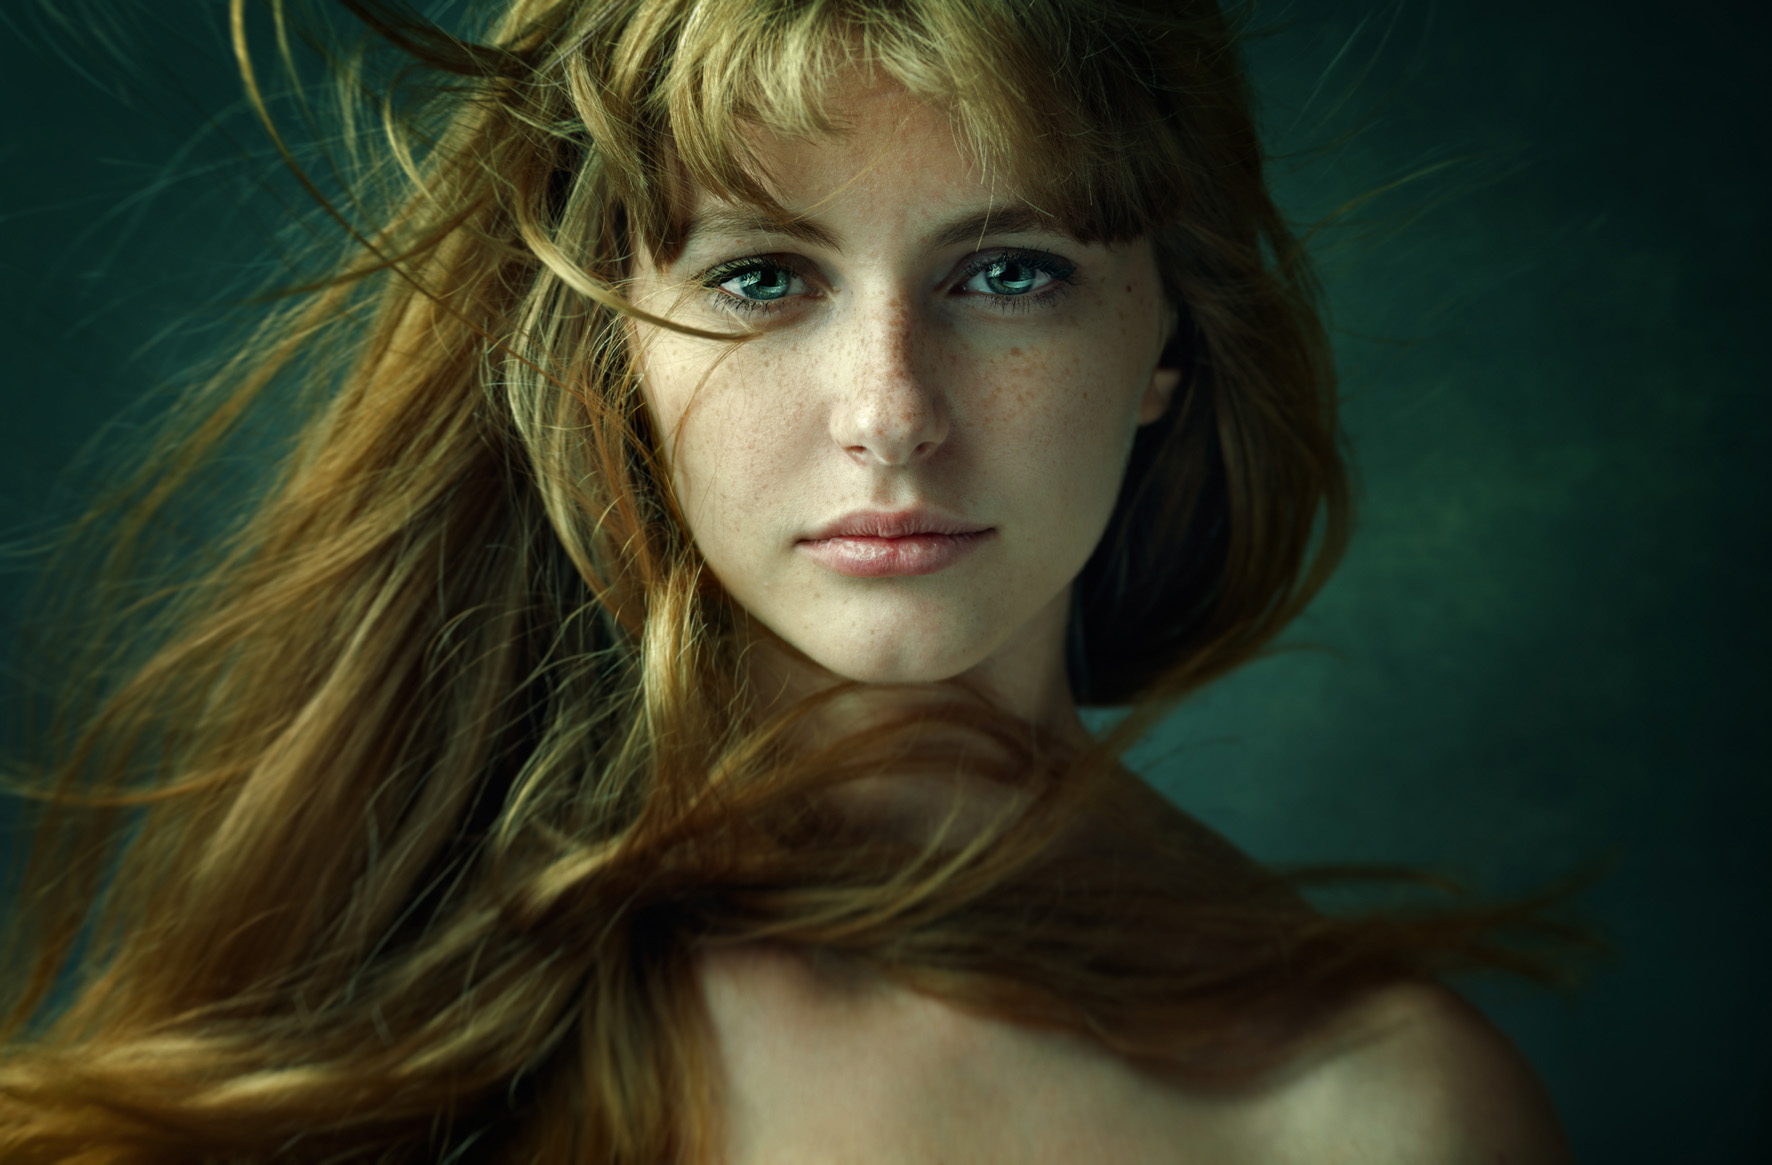 Photo © Image by Dmitry Ageev, Hasselblad Master 2014: Portrait,  http://www.hasselblad.com/masters-2014--.aspx